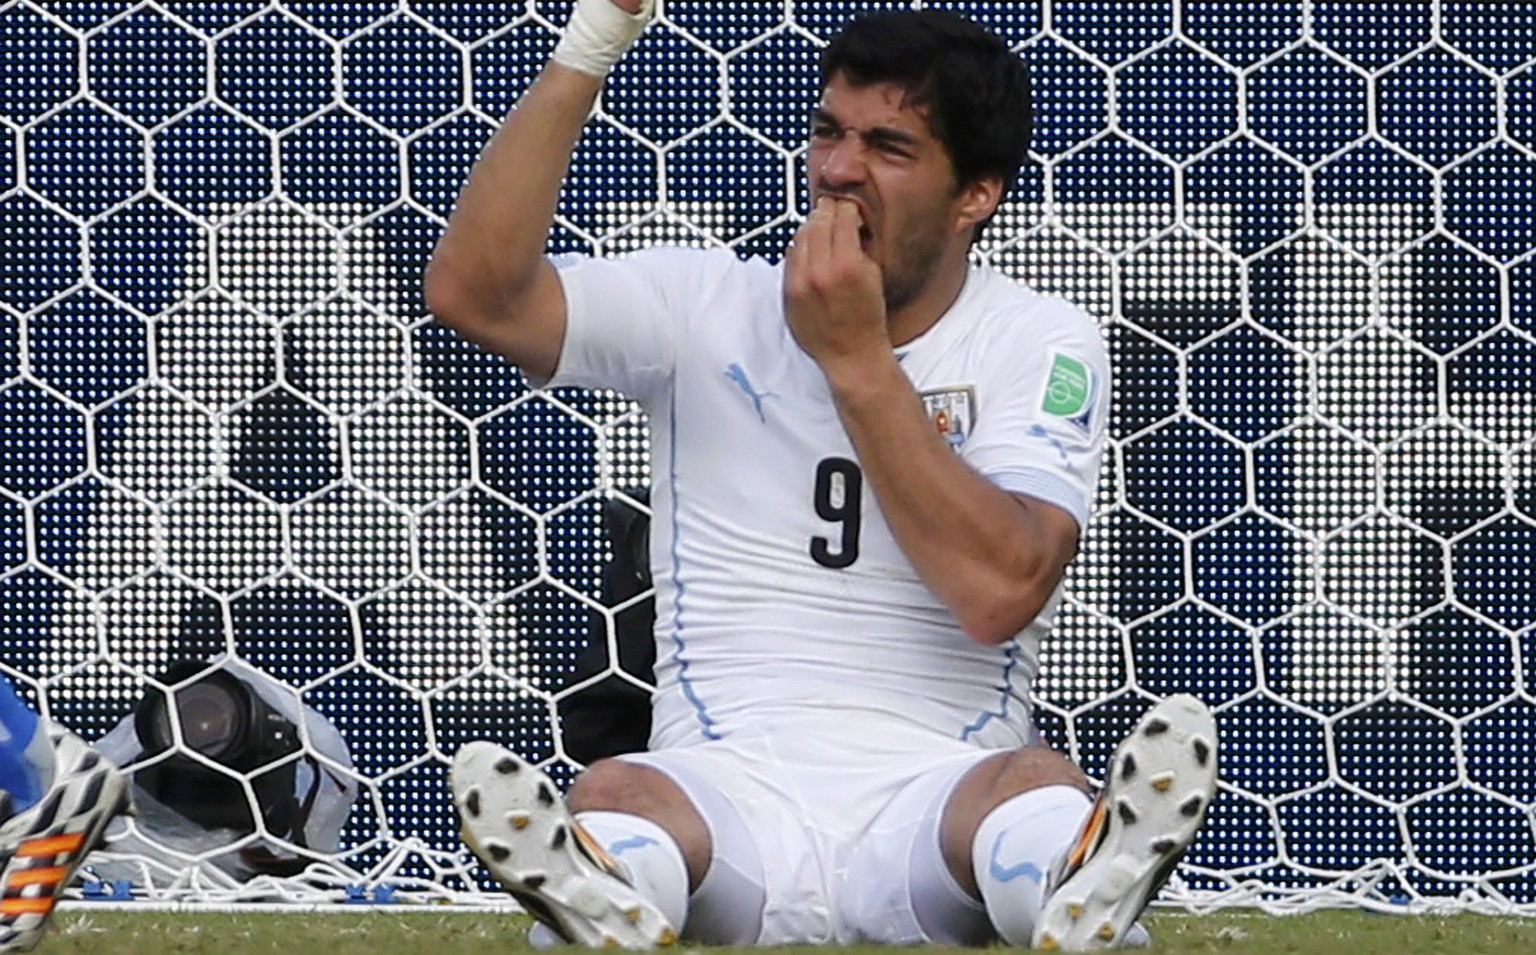 Uruguay's Luis Suarez holds his teeth during the 2014 World Cup Group D soccer match between Uruguay and Italy at the Dunas arena in Natal June 24, 2014. Italy's Giorgio Chiellini accused Suarez of biting his shoulder. REUTERS/Yves Herman (BRAZIL  - Tags: TPX IMAGES OF THE DAY SOCCER SPORT WORLD CUP)